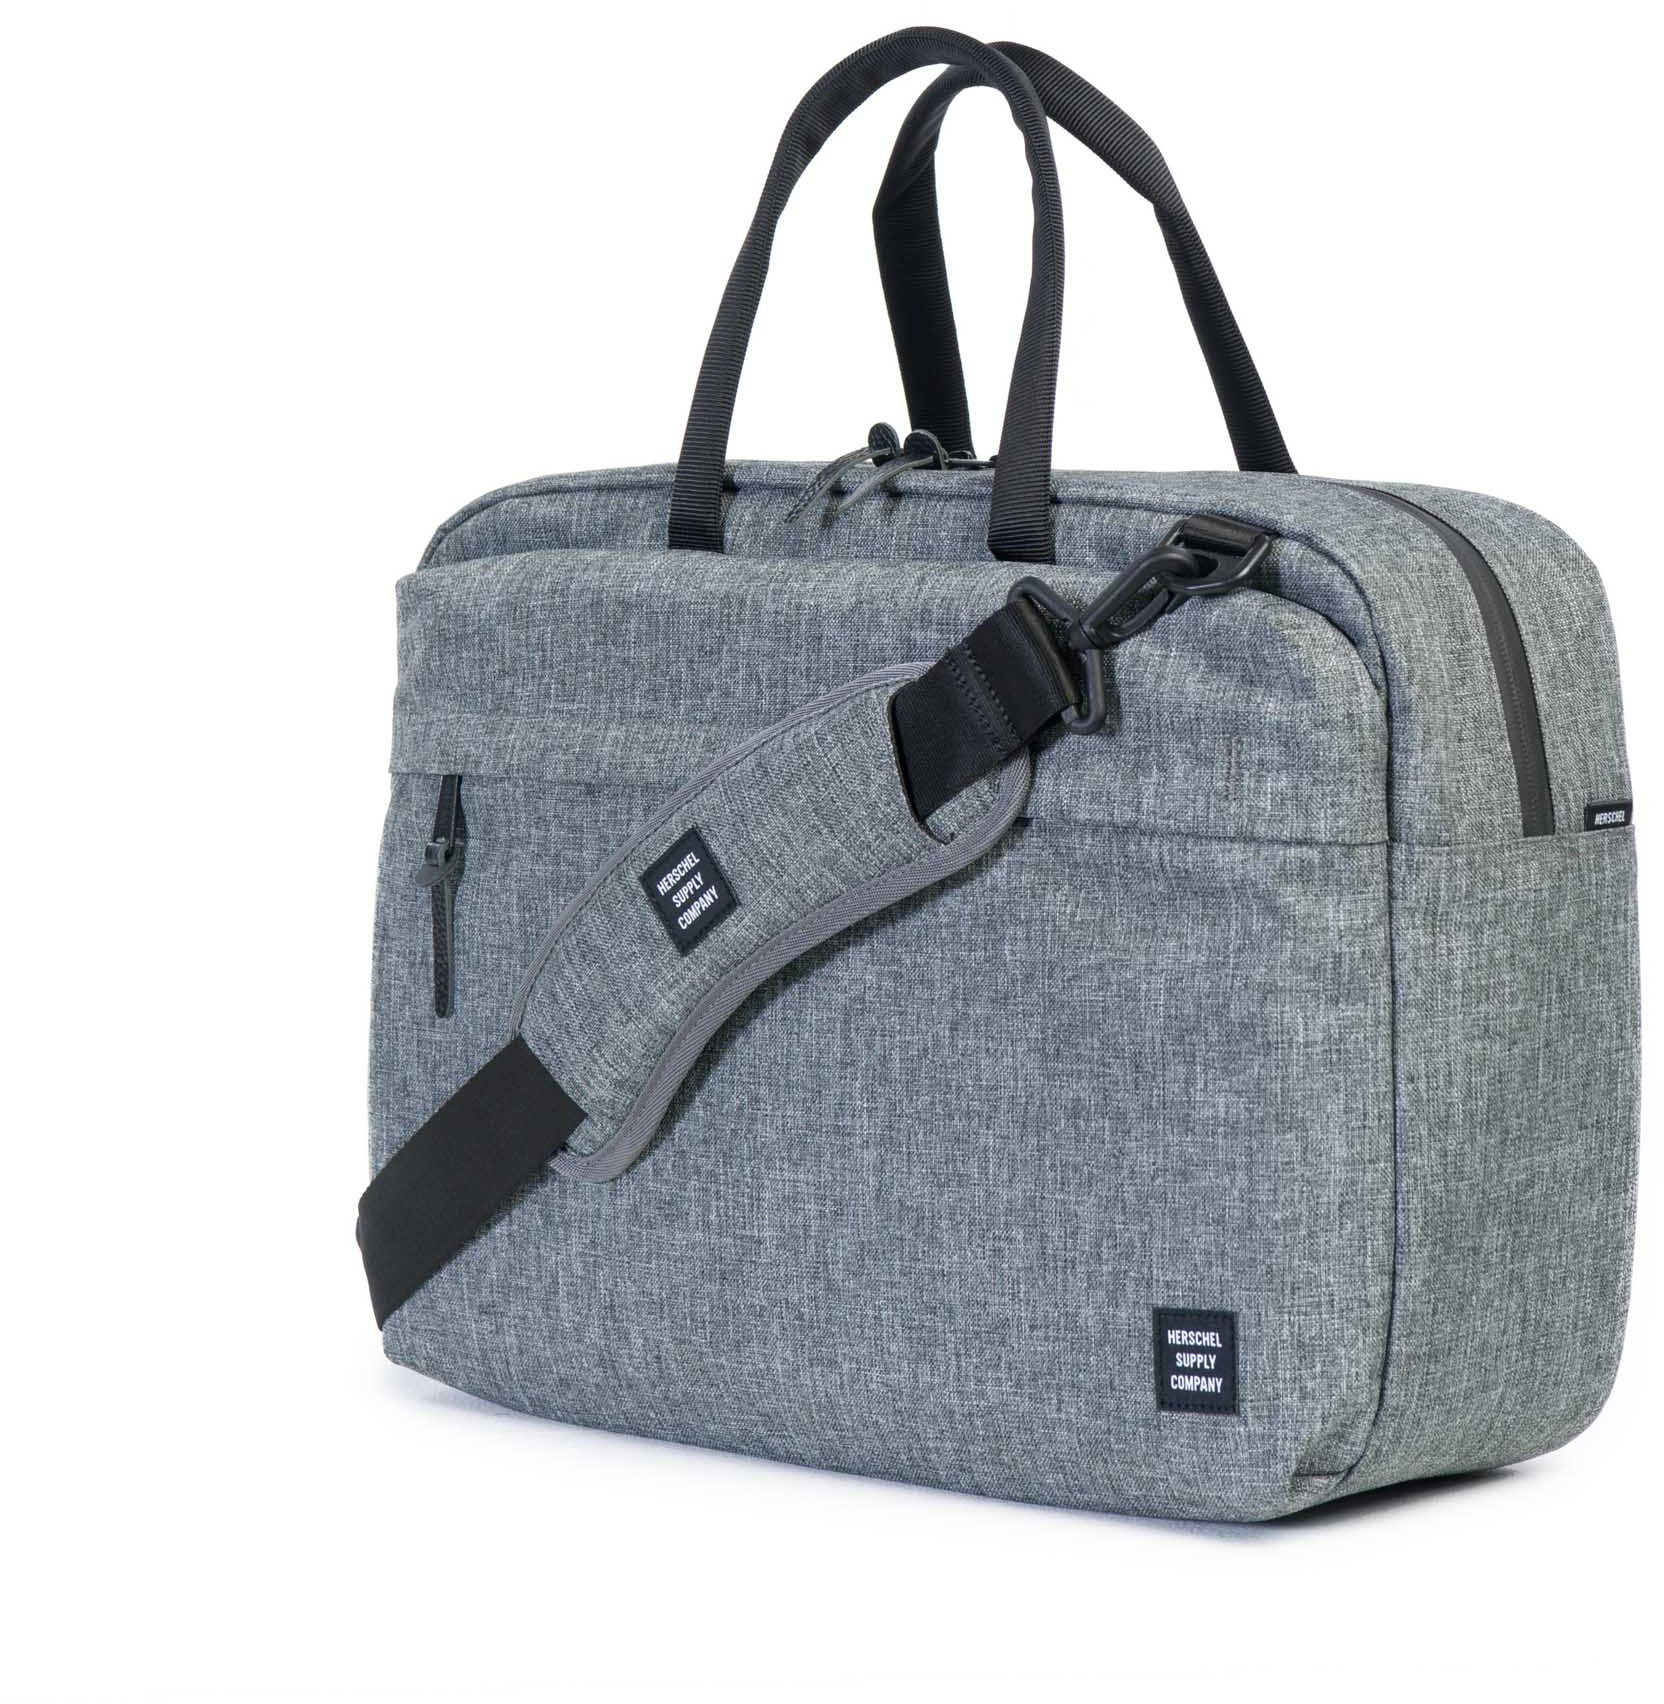 Herschel Messenger Bag mit Laptopfach, »Sandford, Raven Crosshatch«